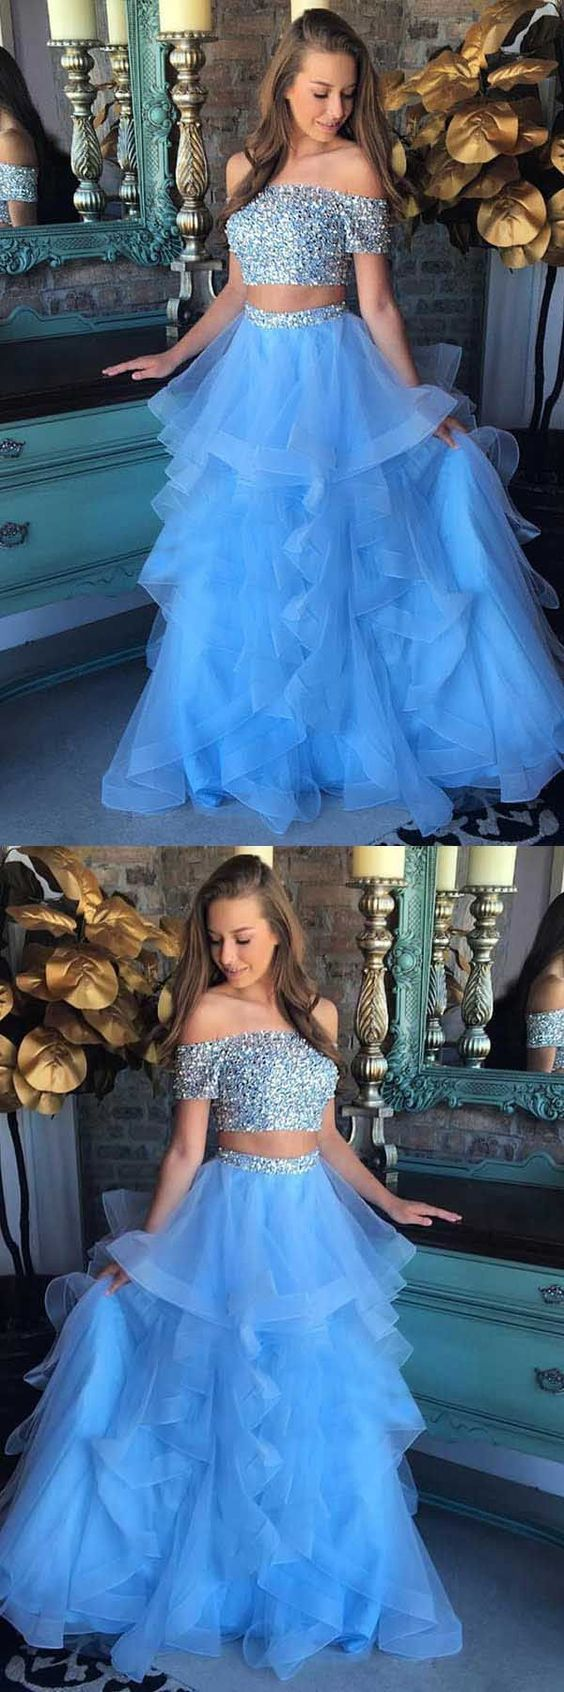 Charming two piece party dress, blue long prom dress, off shoulder prom dress 51616